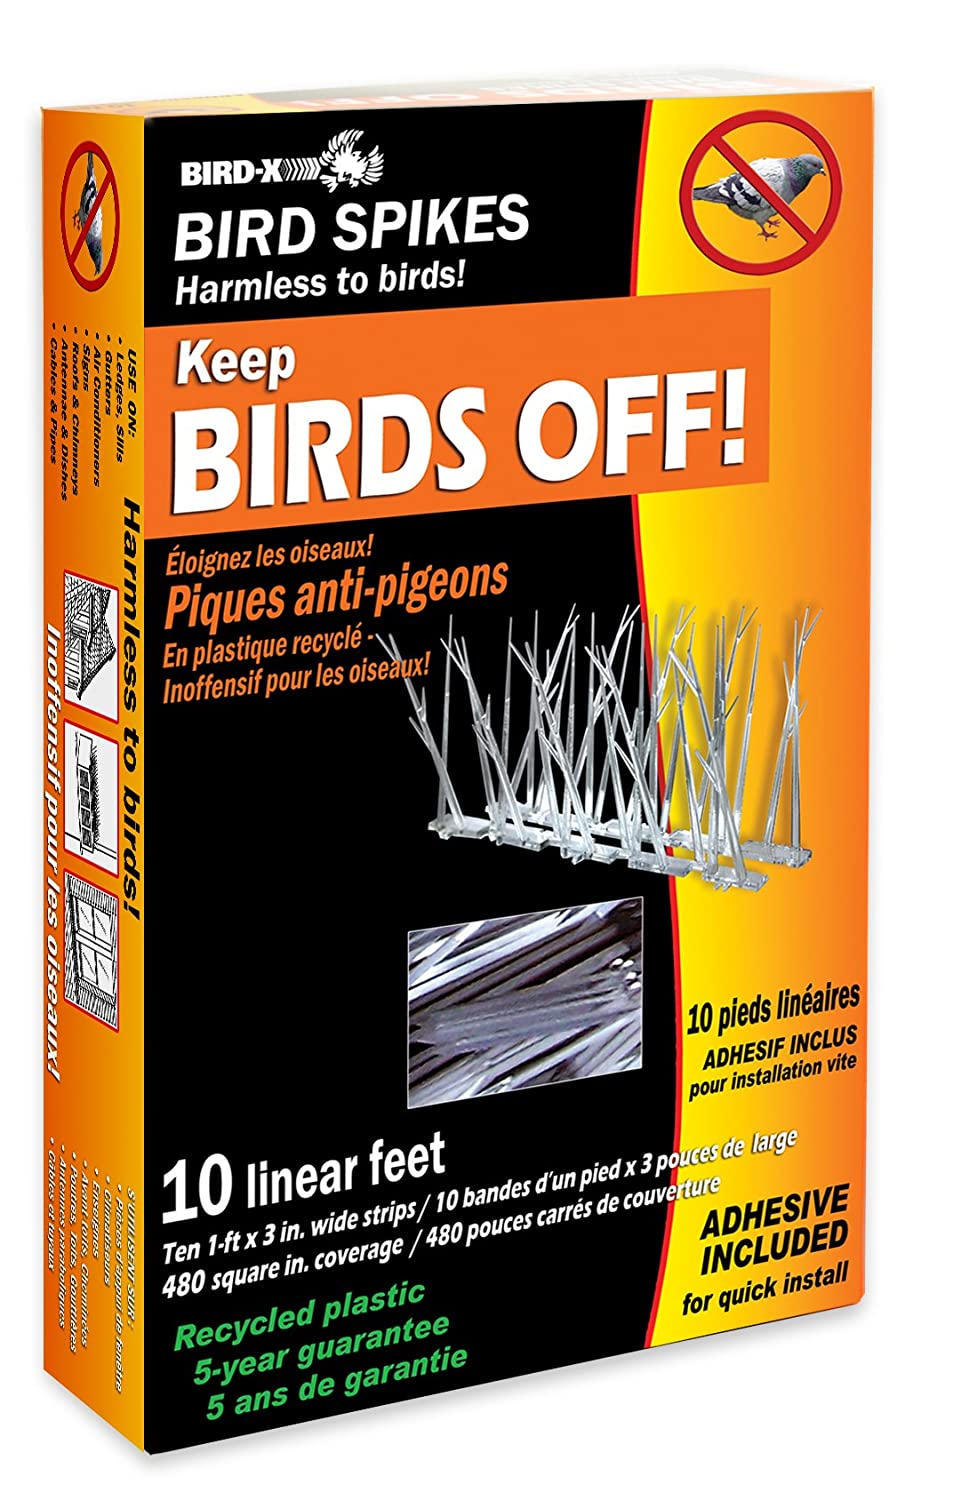 Amazon.com : Bird X Plastic Polycarbonate Bird Spikes Kit With Adhesive  Glue, Covers 10 Feet : Owl Scare Birds : Garden U0026 Outdoor